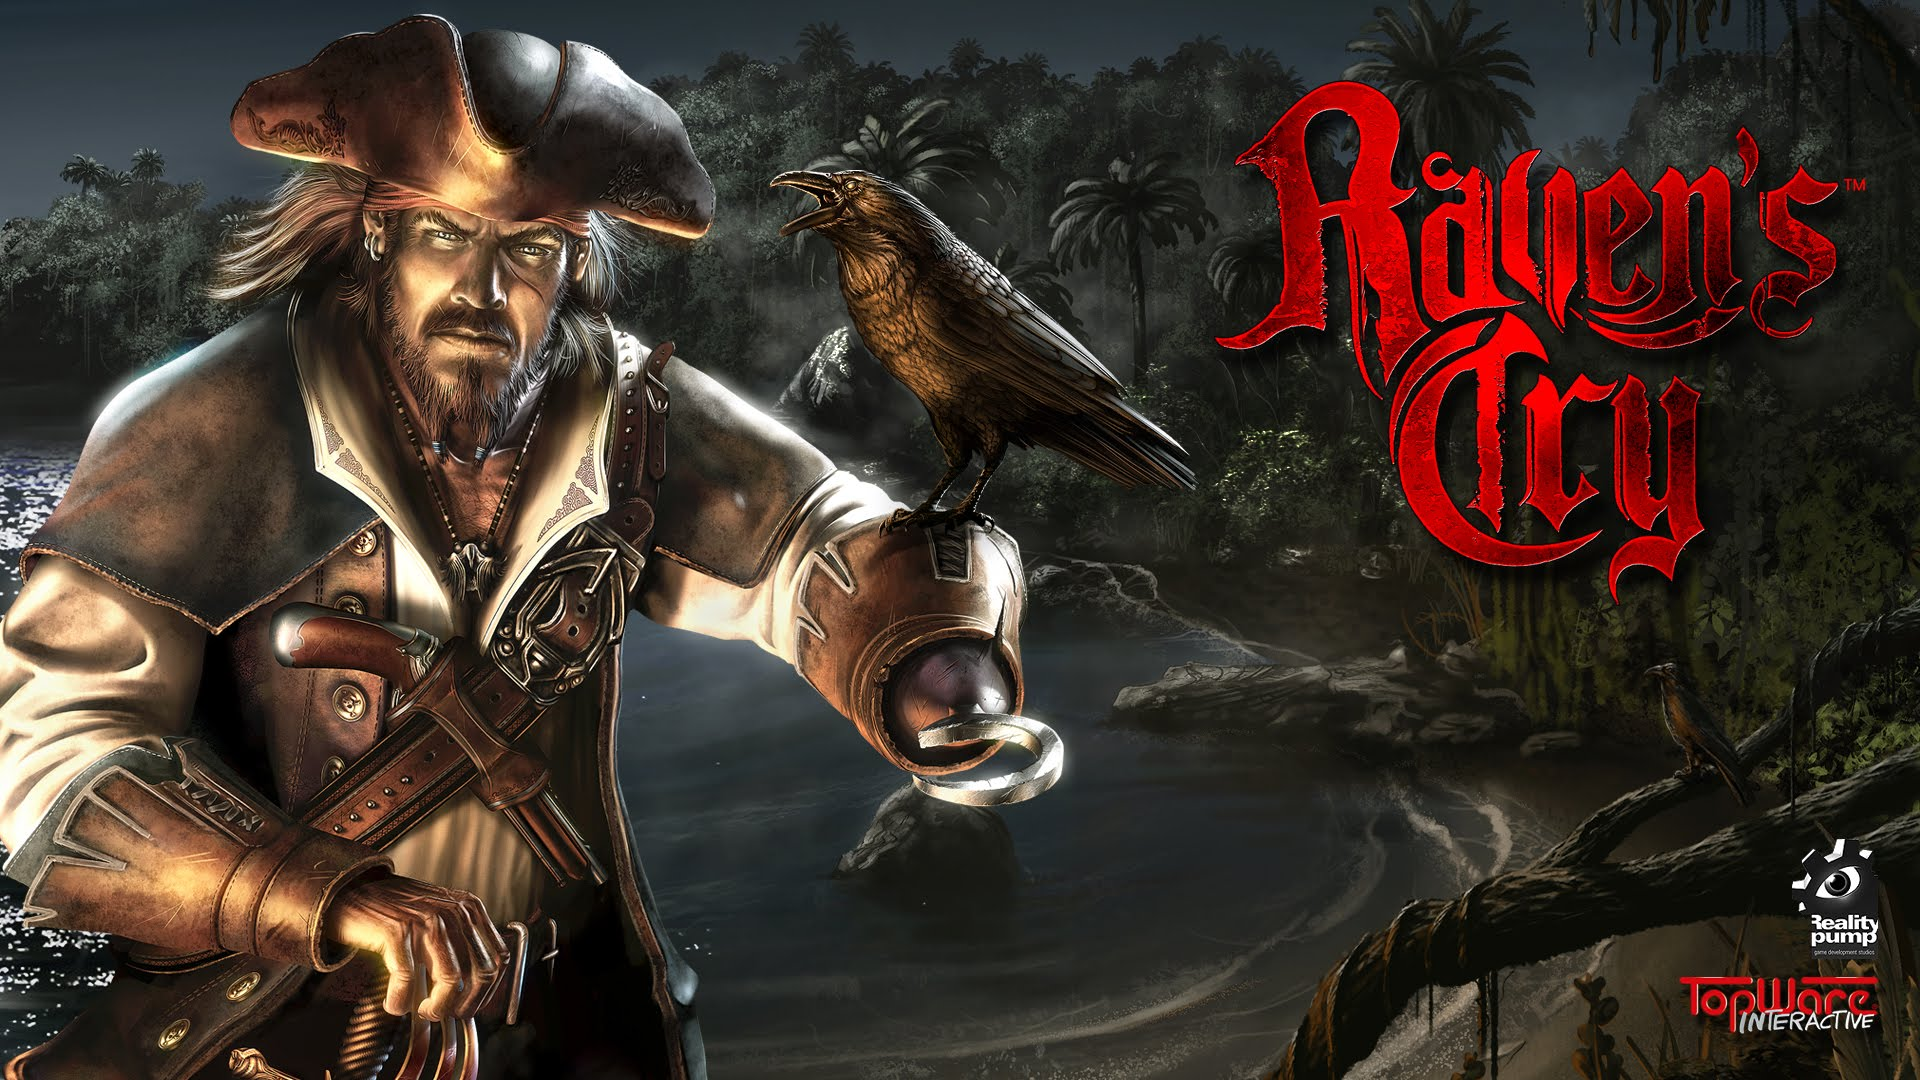 Raven's Cry telecharger gratuit de PC et Torrent